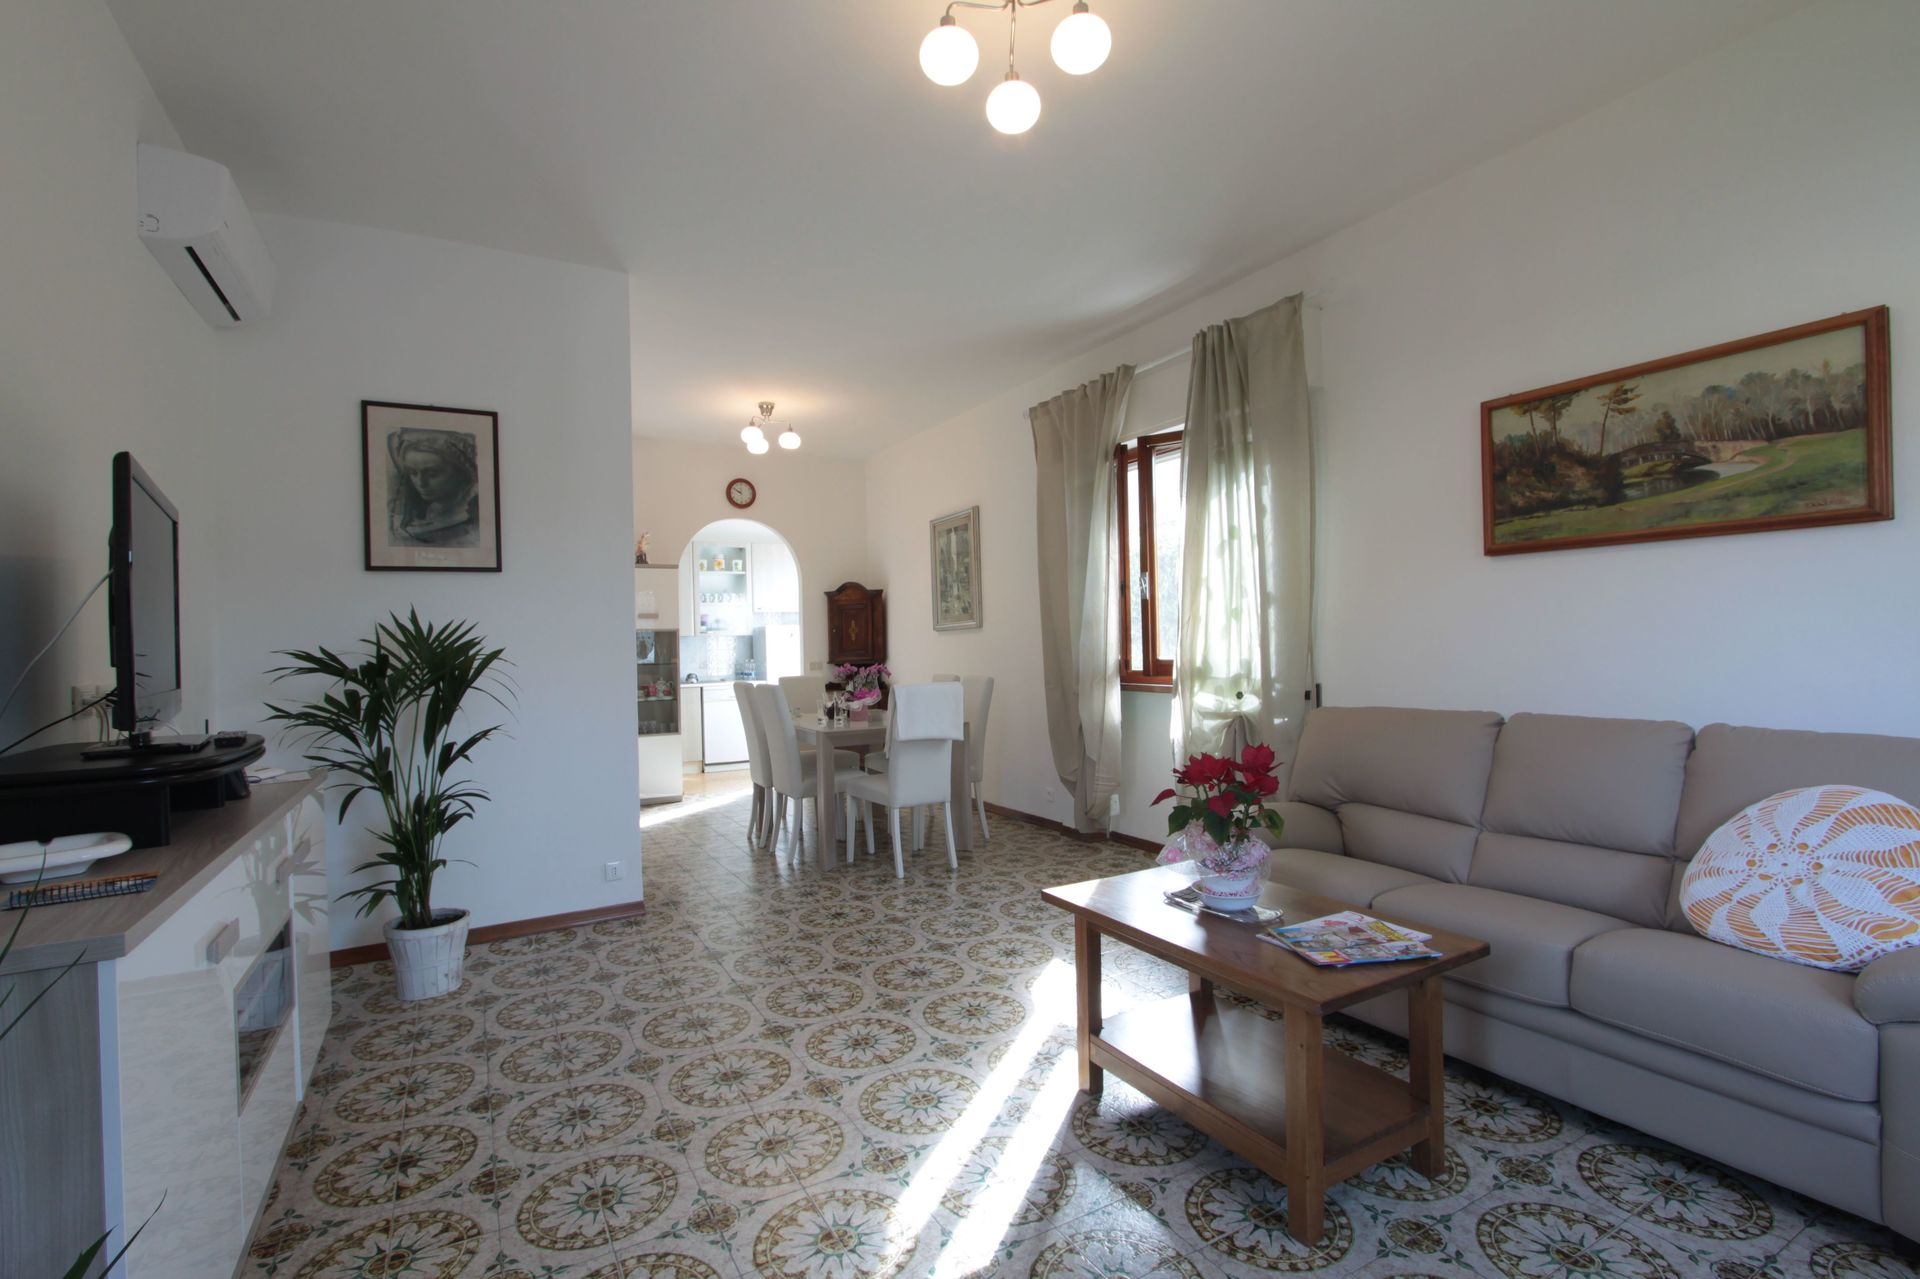 Italian Case Forte Dei Marmi villa sandra: vacation rental that sleeps 6 people in 3